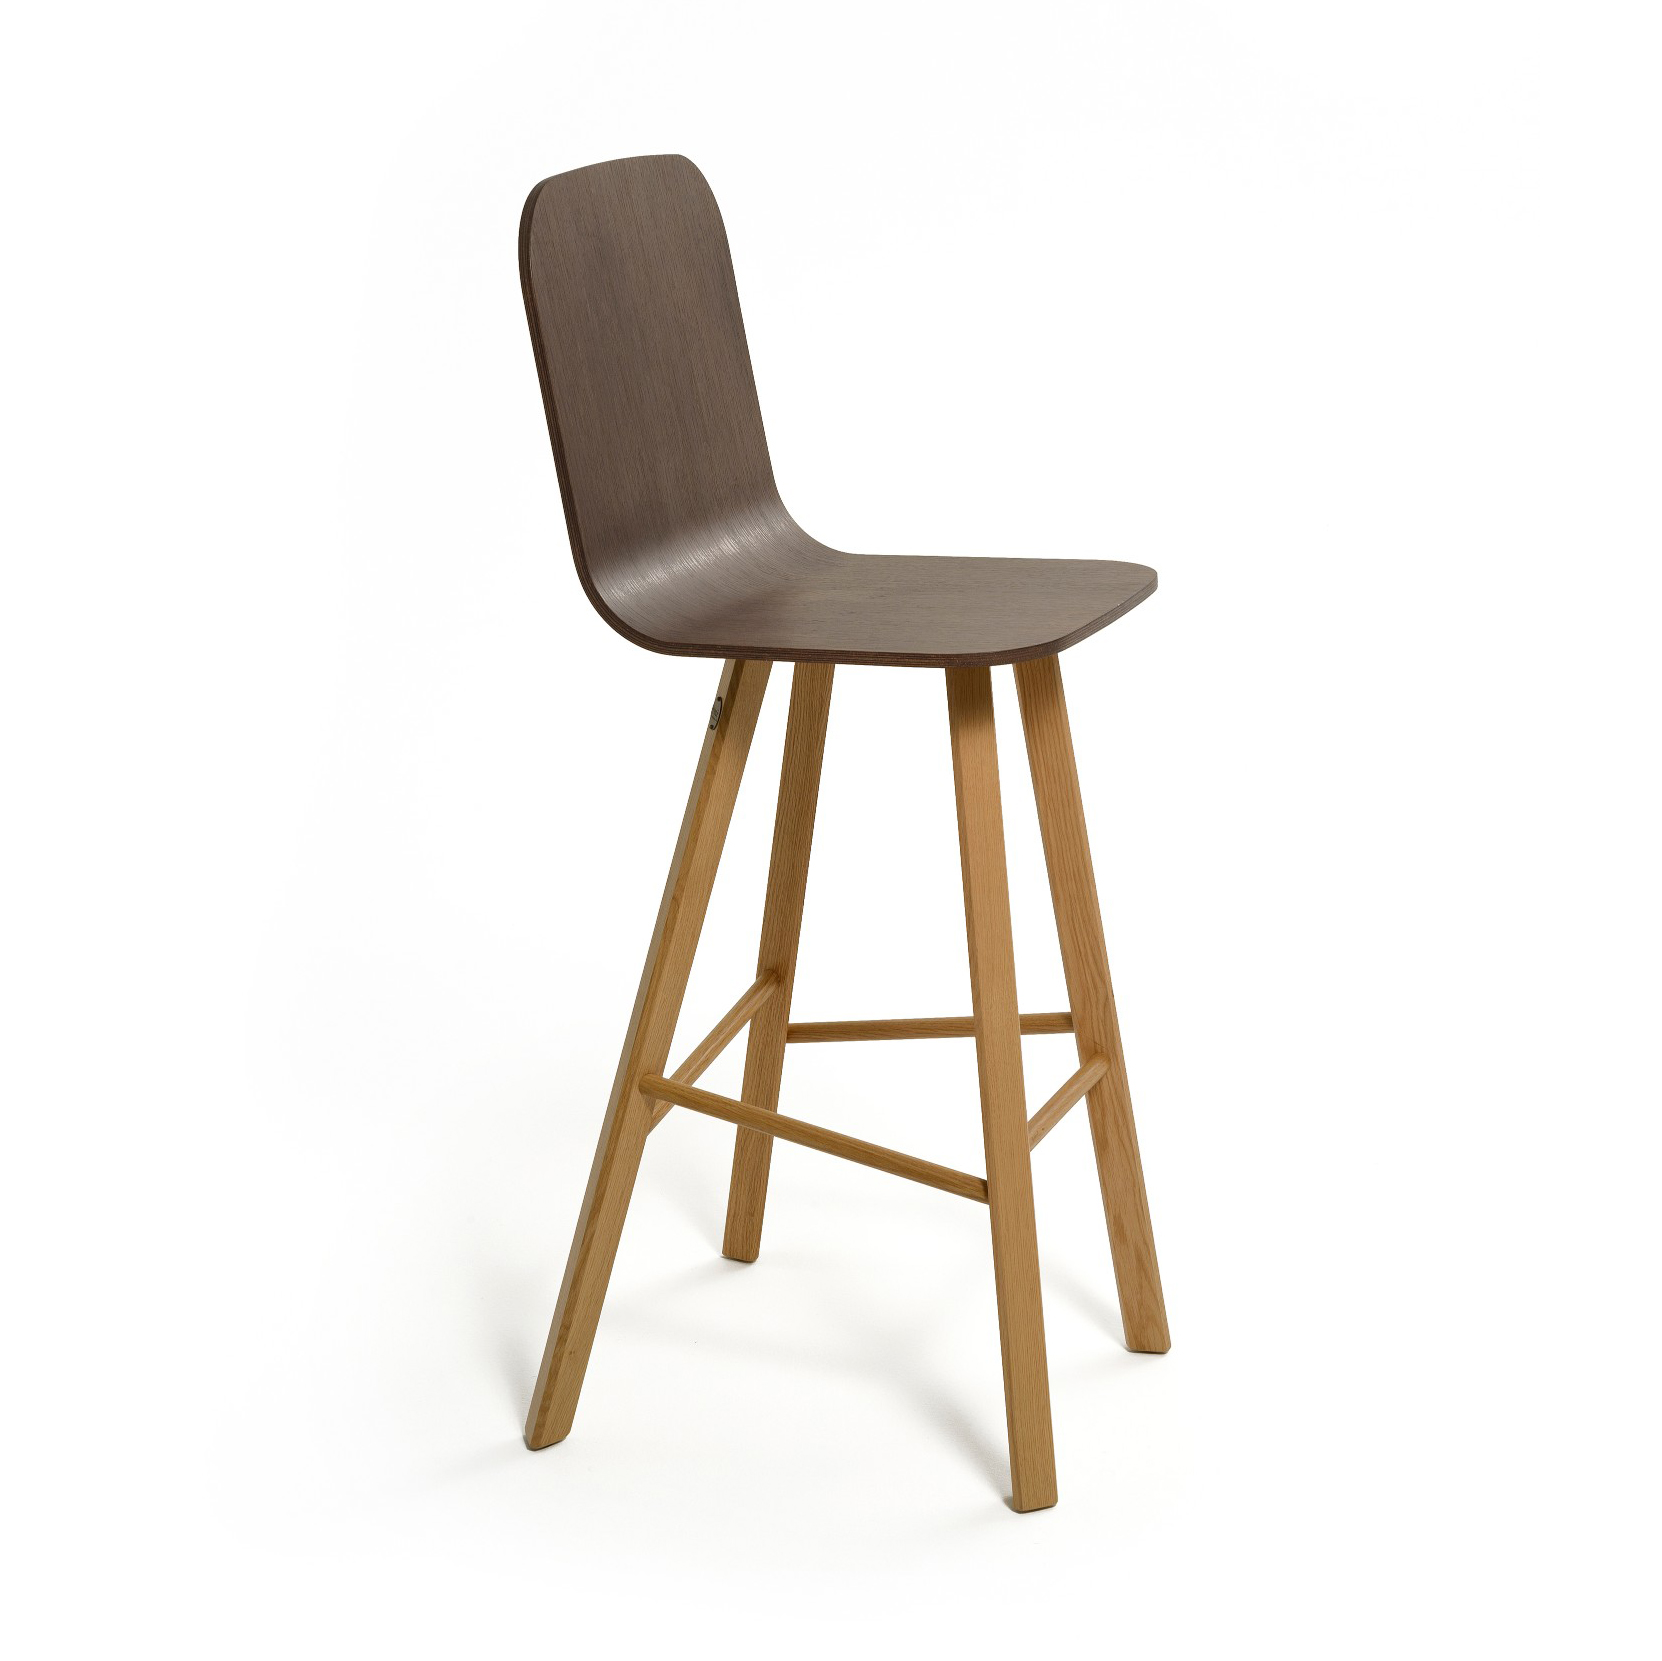 Tria Stool - Variation on Tria Simple, this stool is suitable both for homes and contract with the 2 version low back LB or high back HB. Bent plywood shell, available in 3 different variations with a range of fabics, leather and paint options. UPHOLSTERY A range of fabrics and colours are available for the upholstered option, prices may vary. Please feel free to contact for full details and other enquiries.  | Matter of Stuff